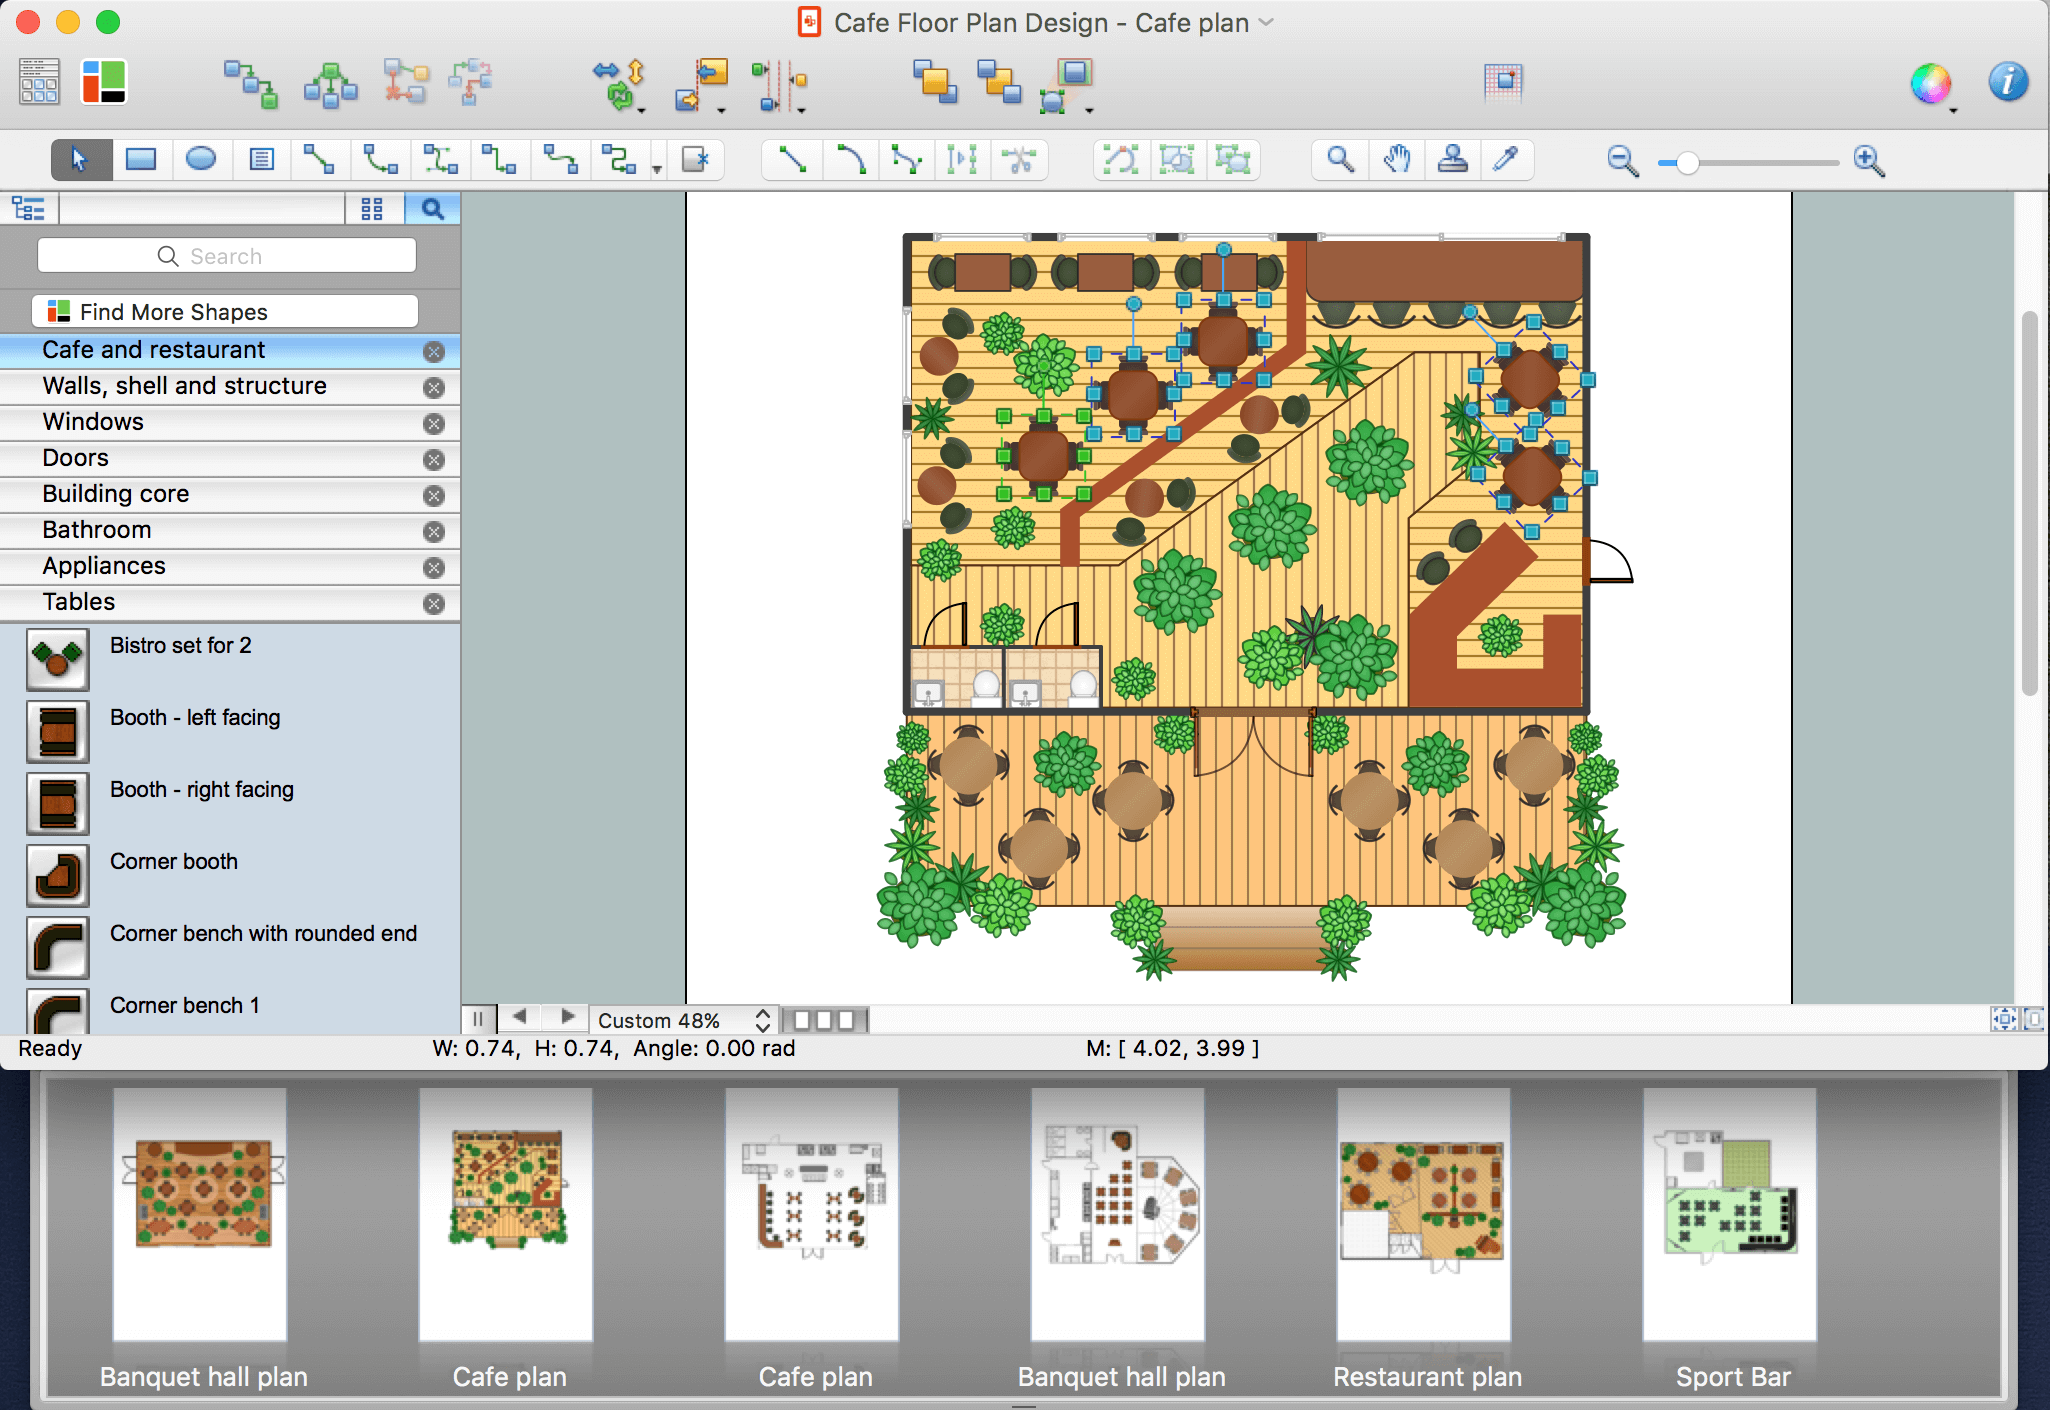 Cafe Floor Plan Design Software